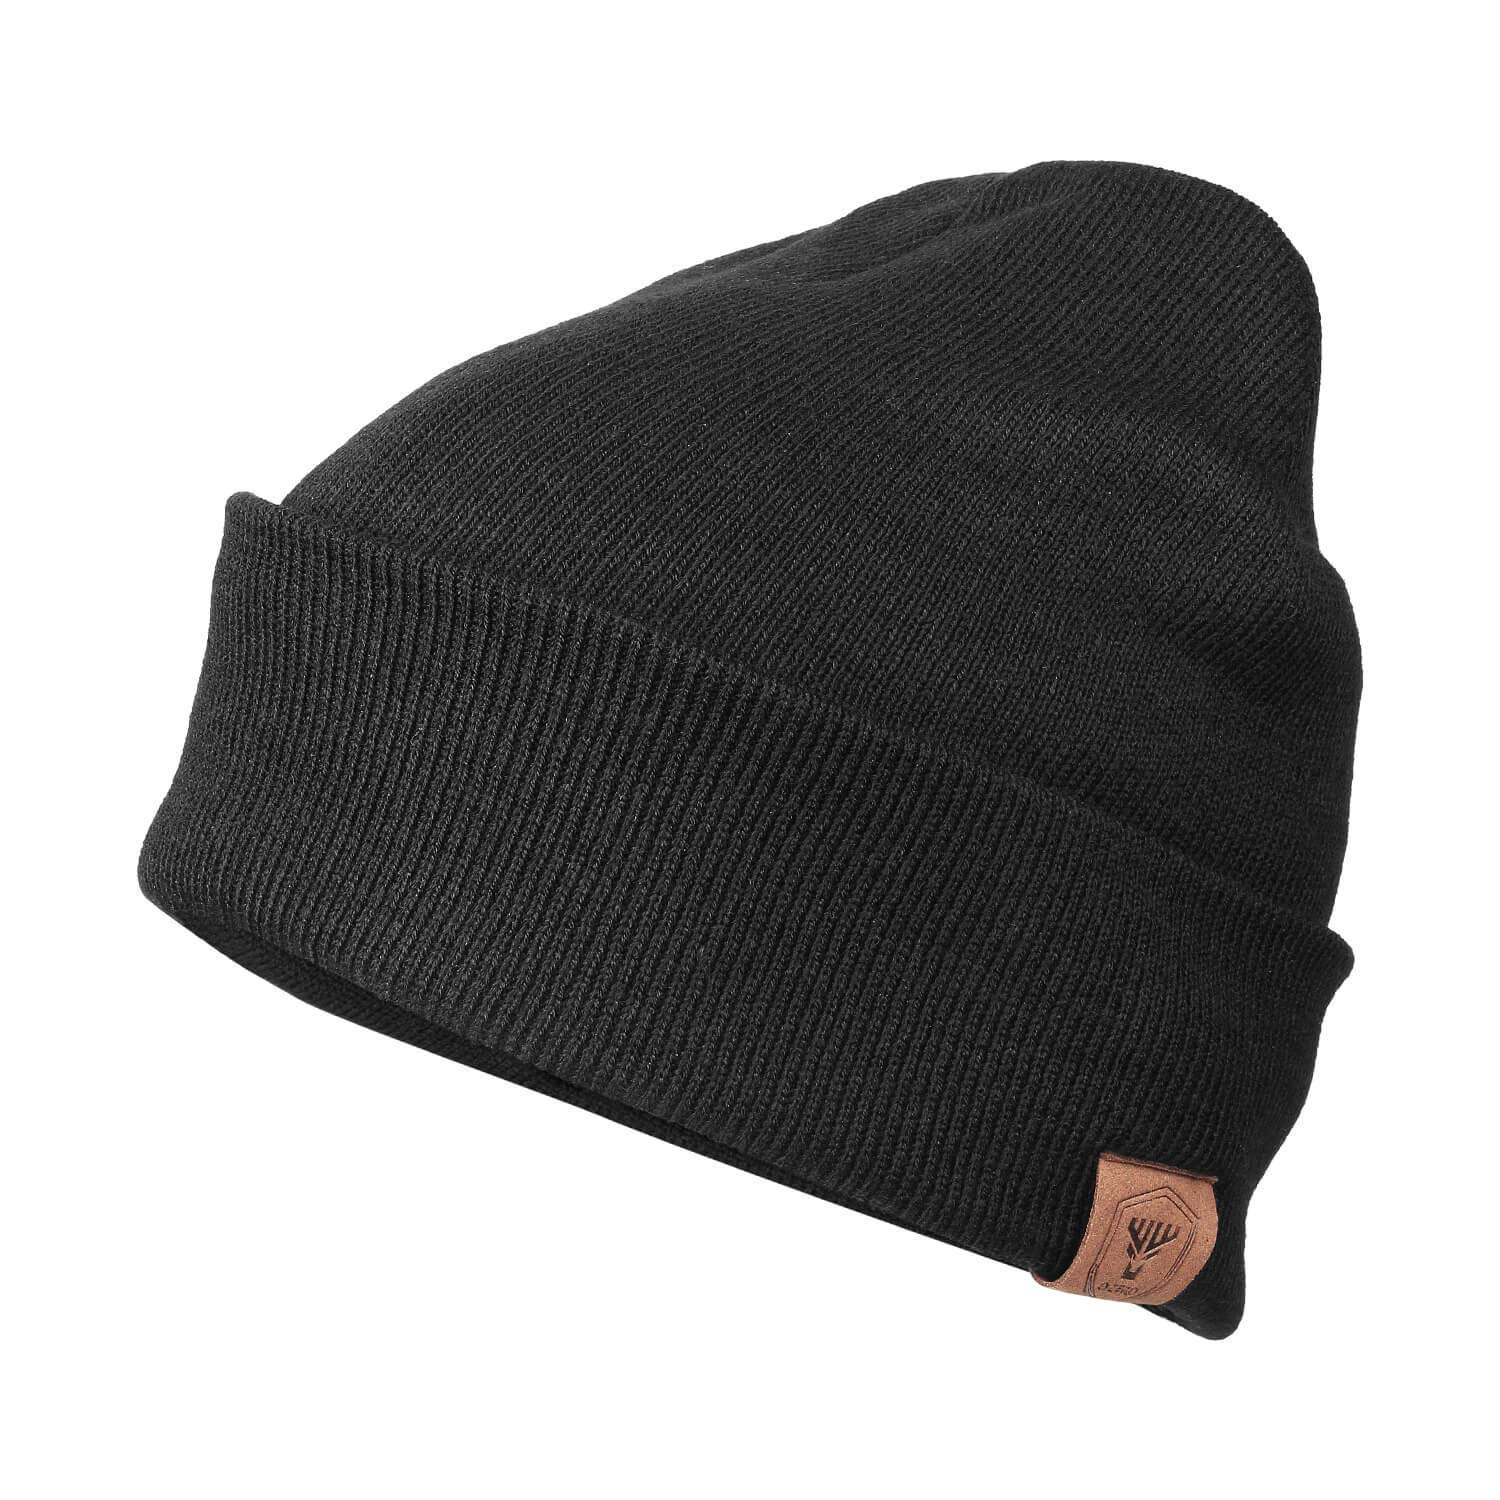 d46482a32872af Get Quotations · OZERO Winter Knit Beanie Hat - Warm Polar Fleece Skull Cap  for Men and Women